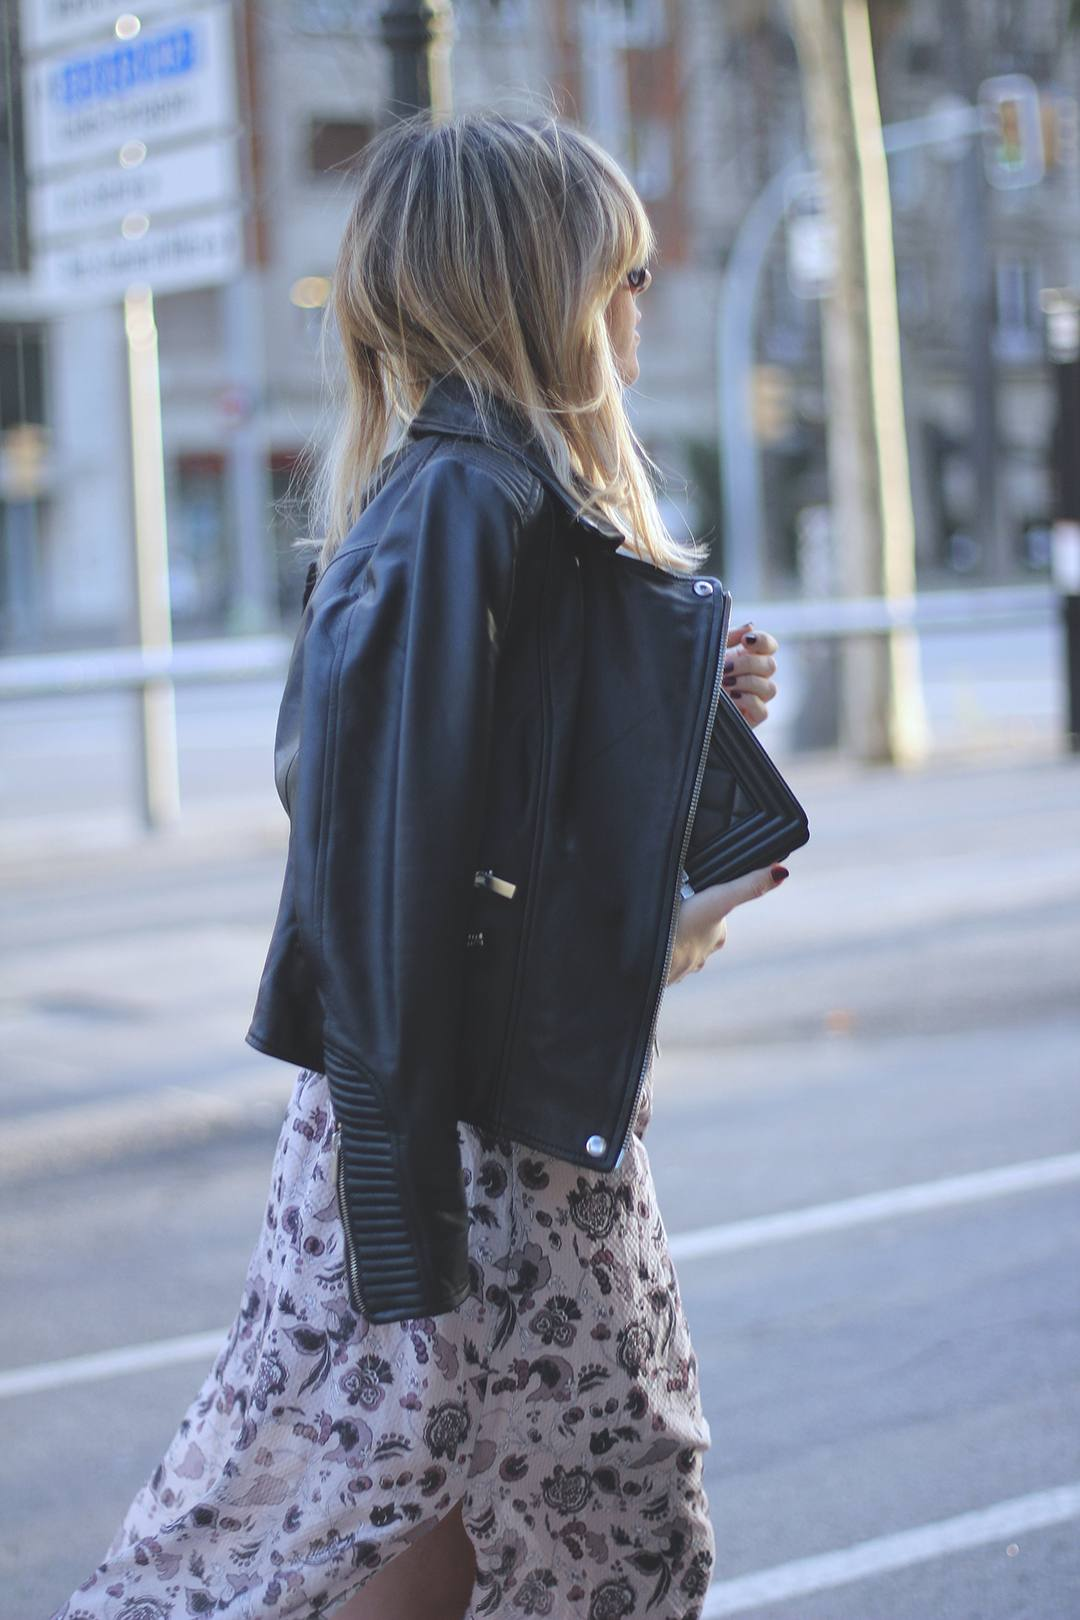 Biker-jacket-Monica-sors-fashion-blog-style-outfits-blogger-biker-jacket-2016-trends